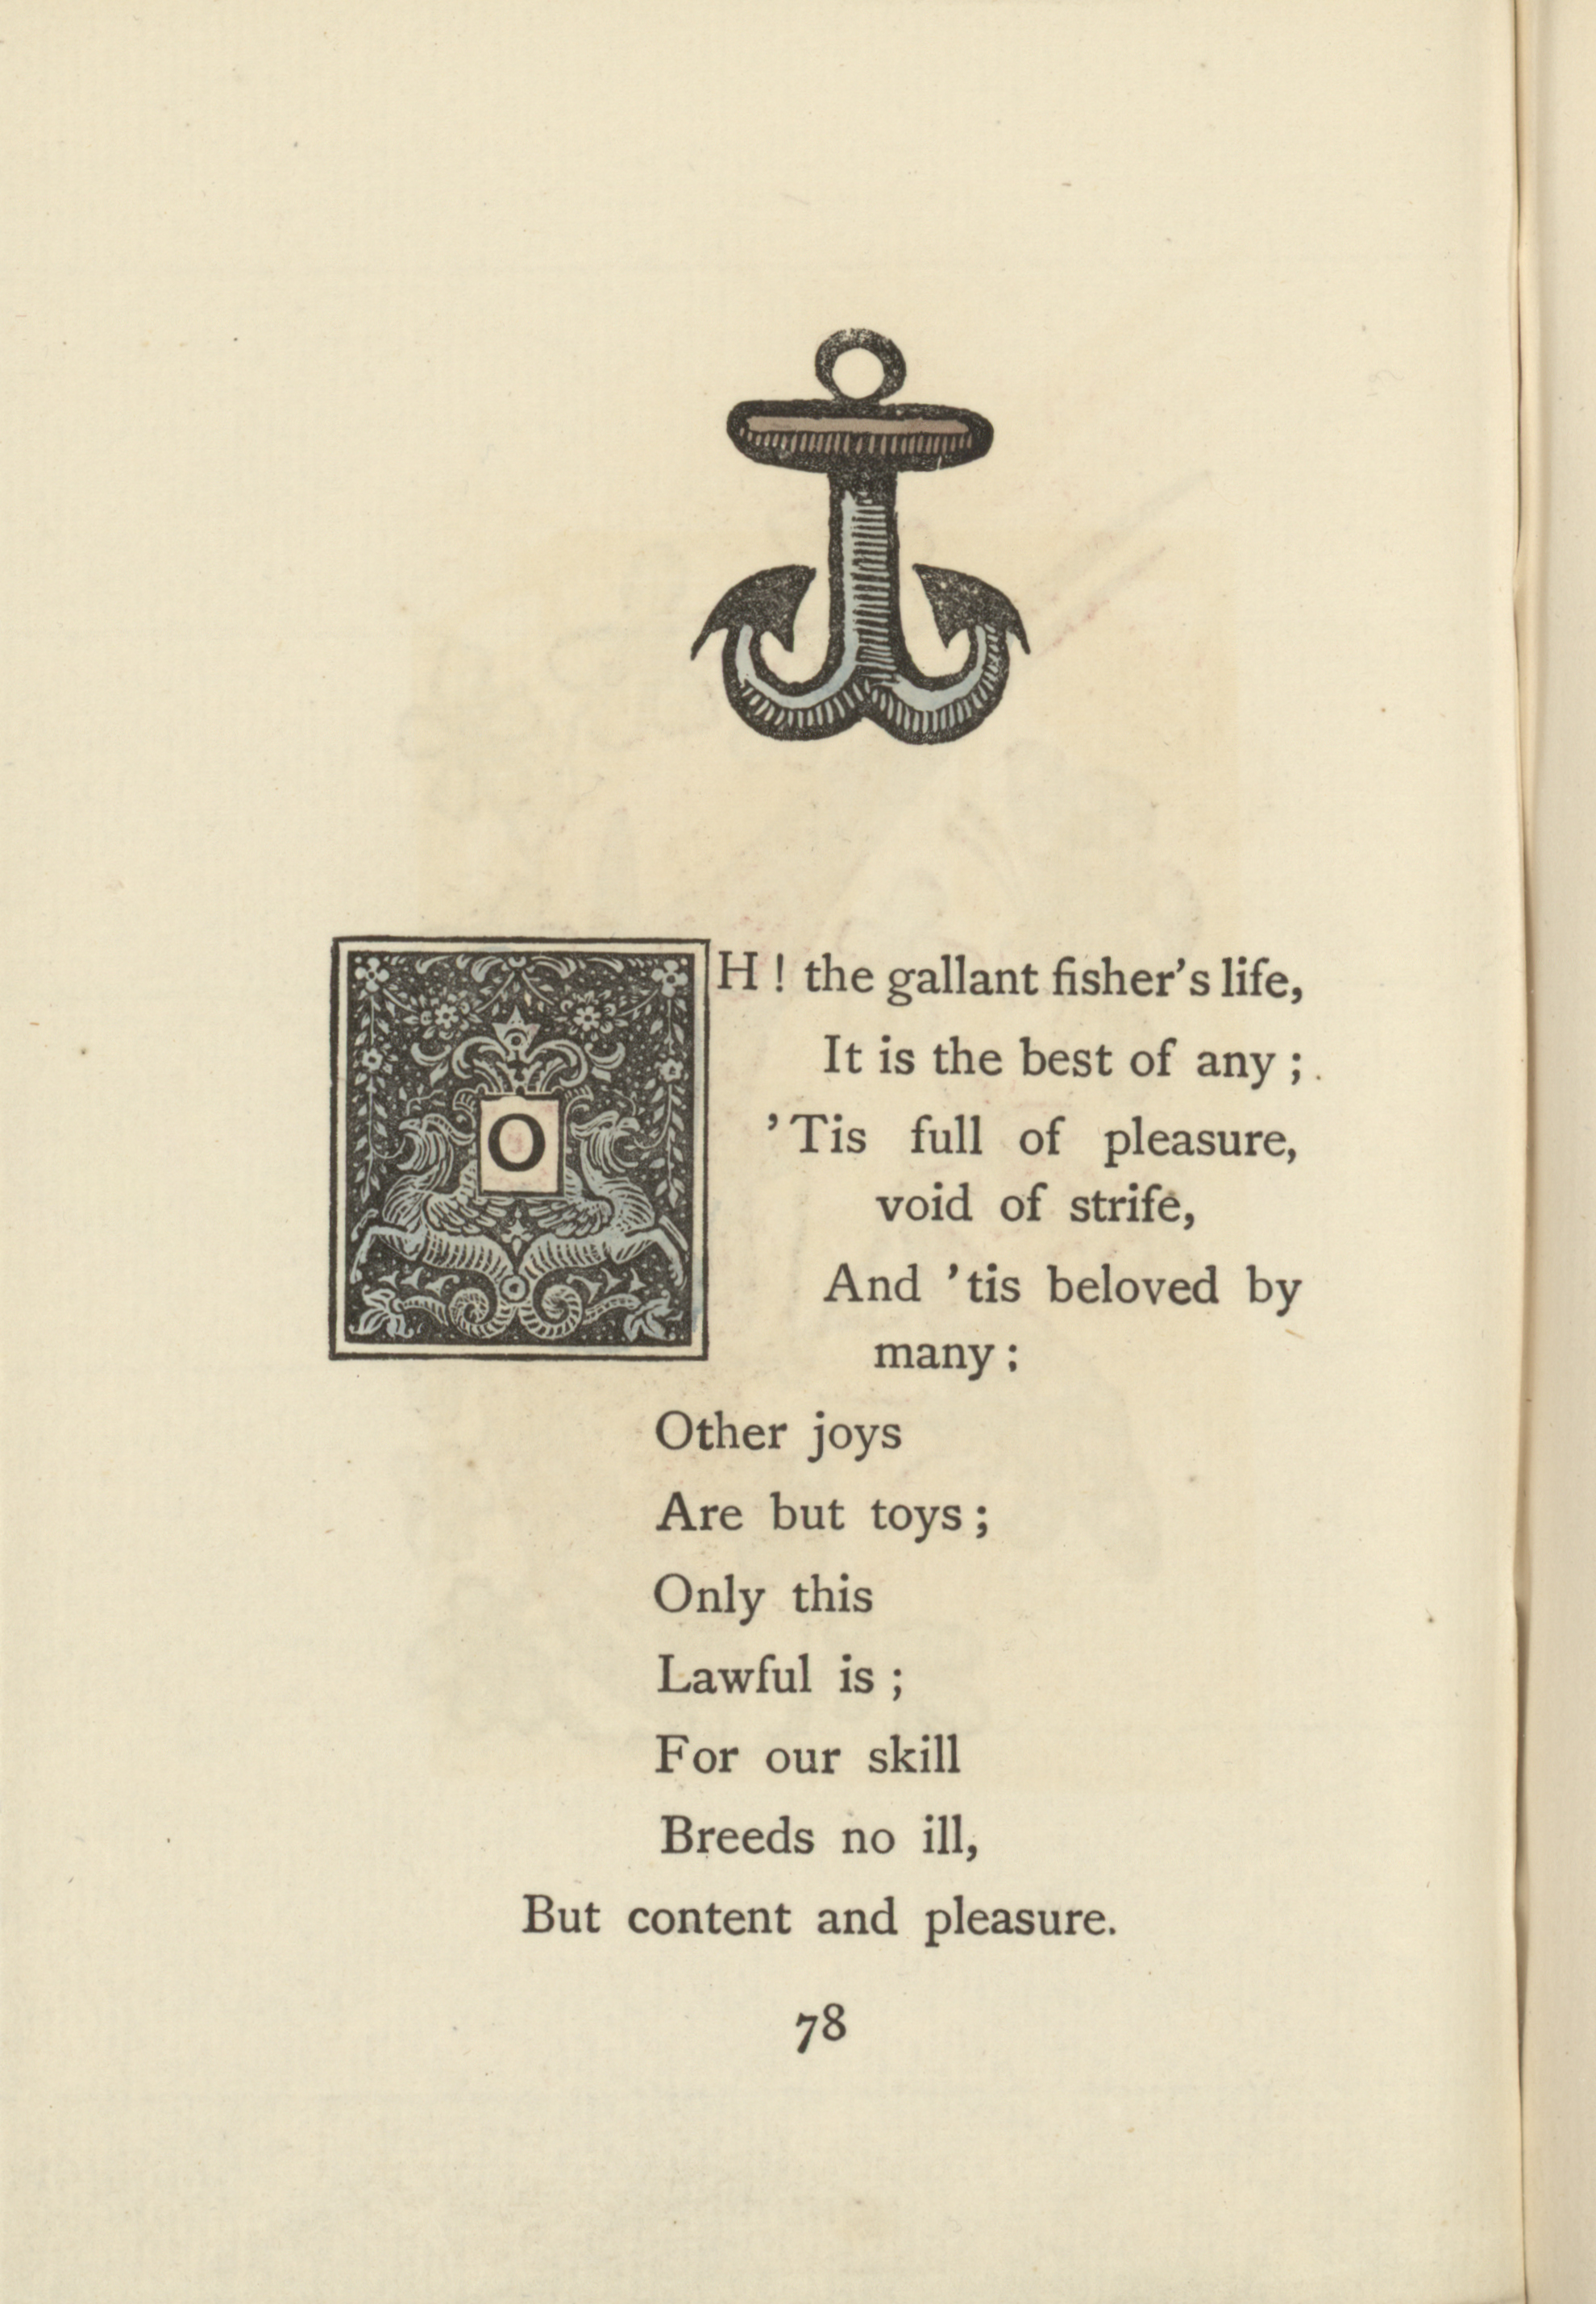 1855 Page with Anchor